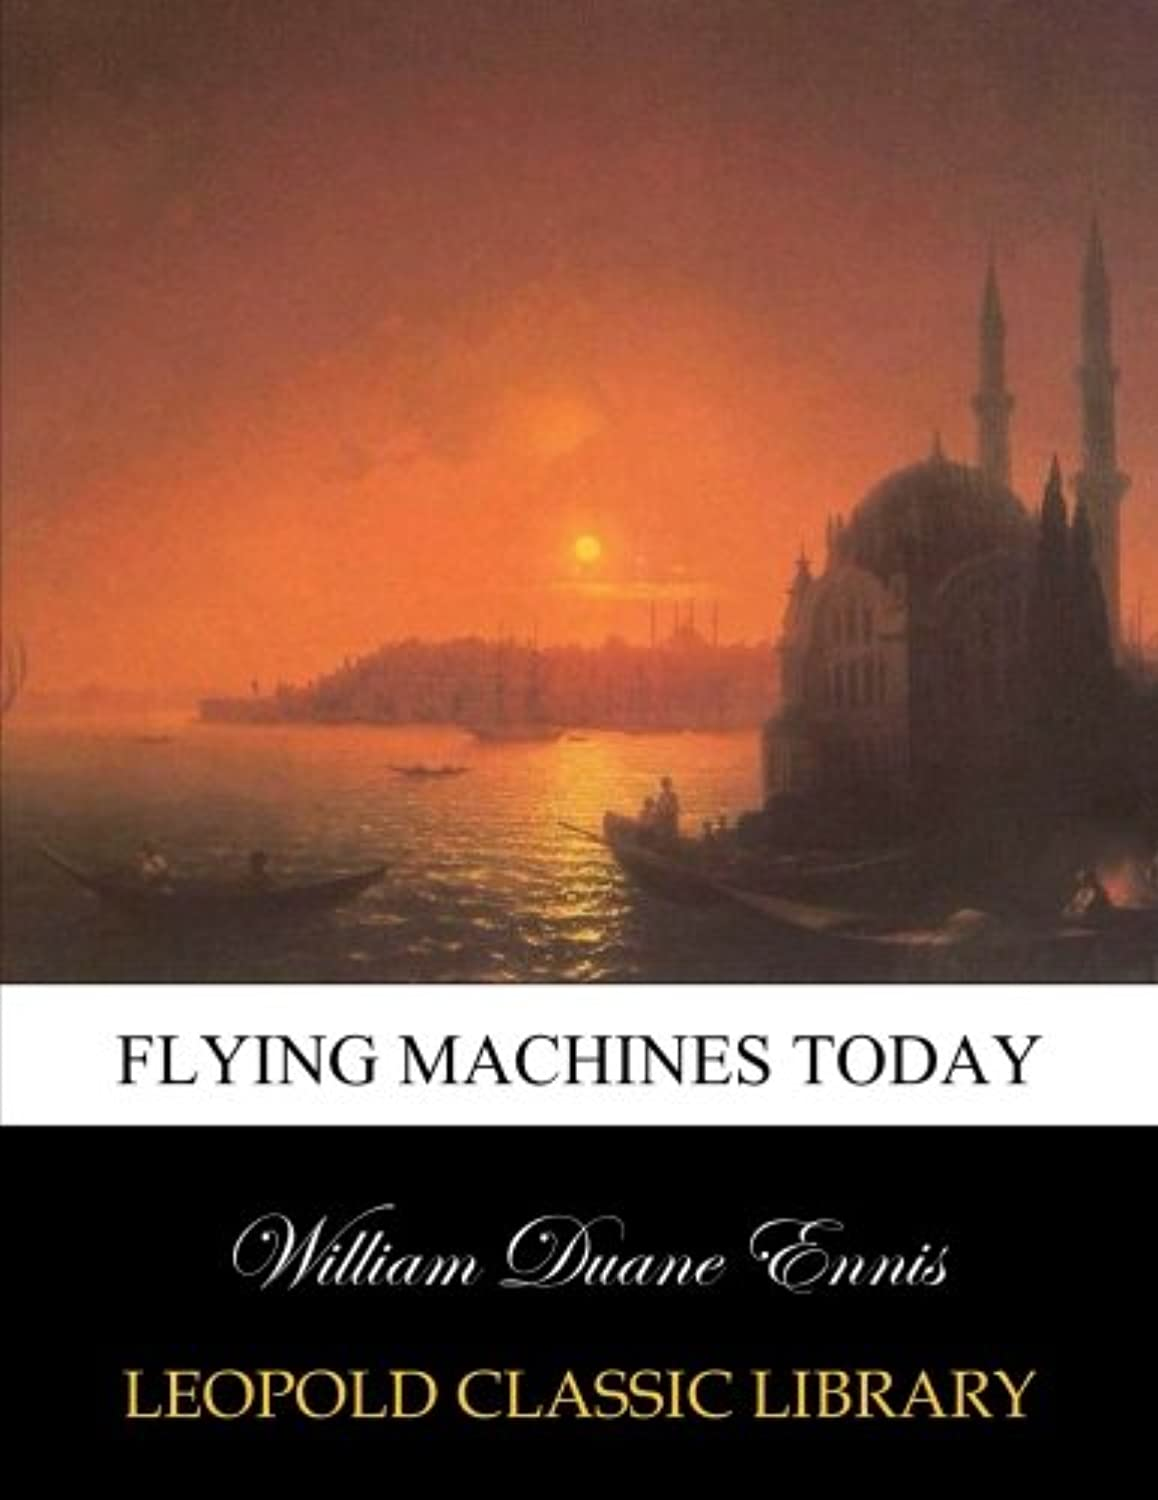 Flying machines today